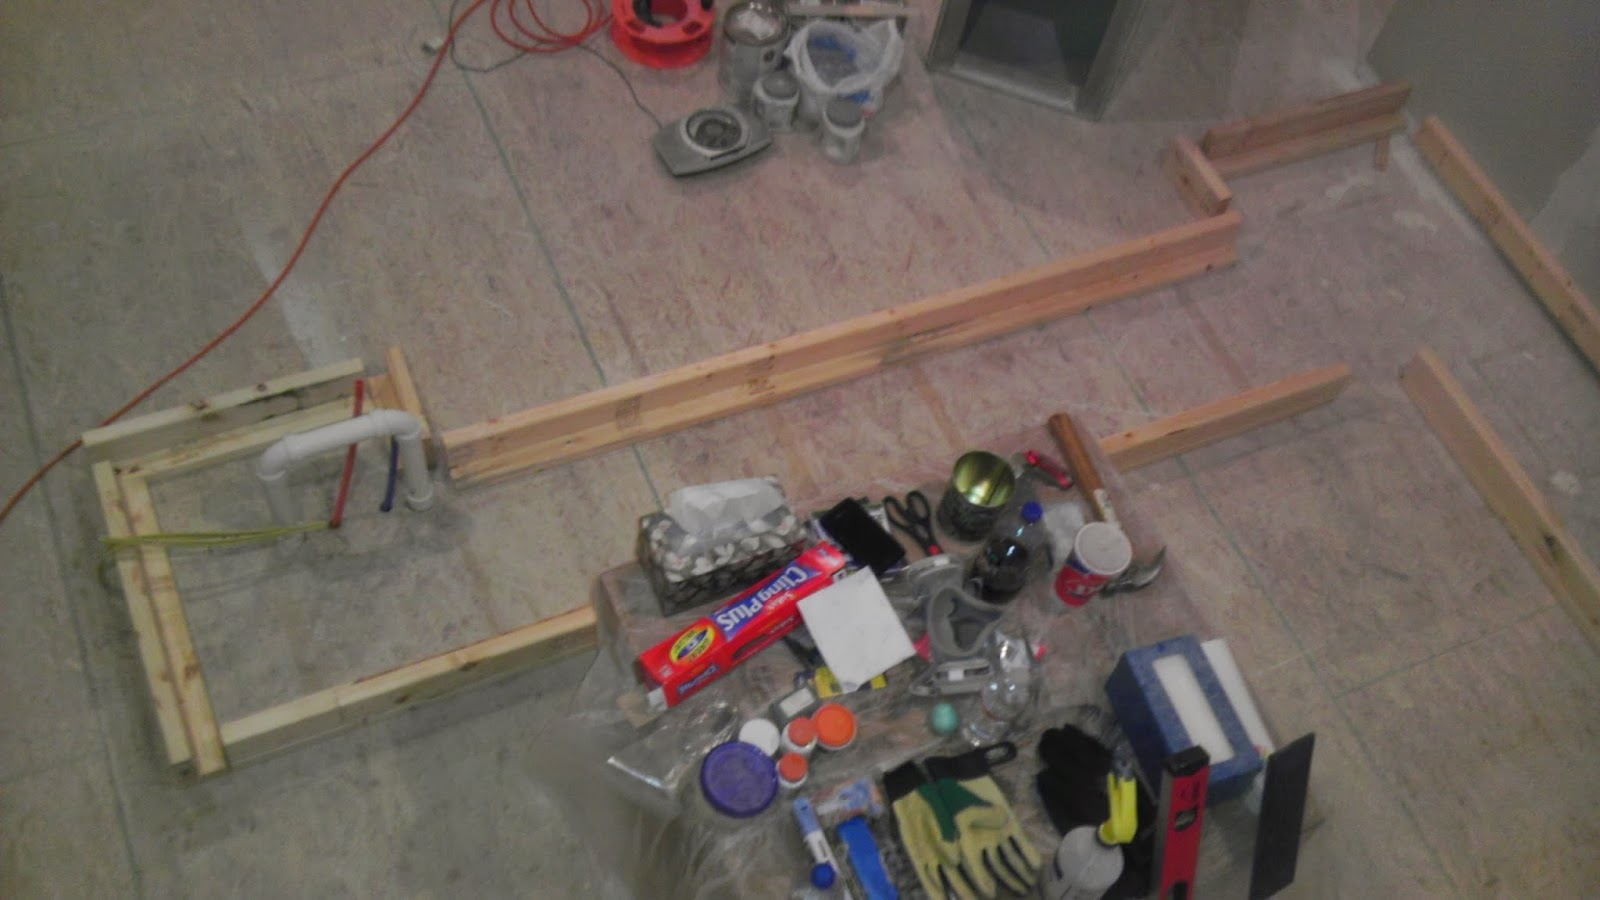 building base frame for ikea cabinets kitchen base cabinets Putting in framing for the kitchen cabinets We are installing Ikea kitchen cabinets but the instructions will tell you if your cabinets are not going